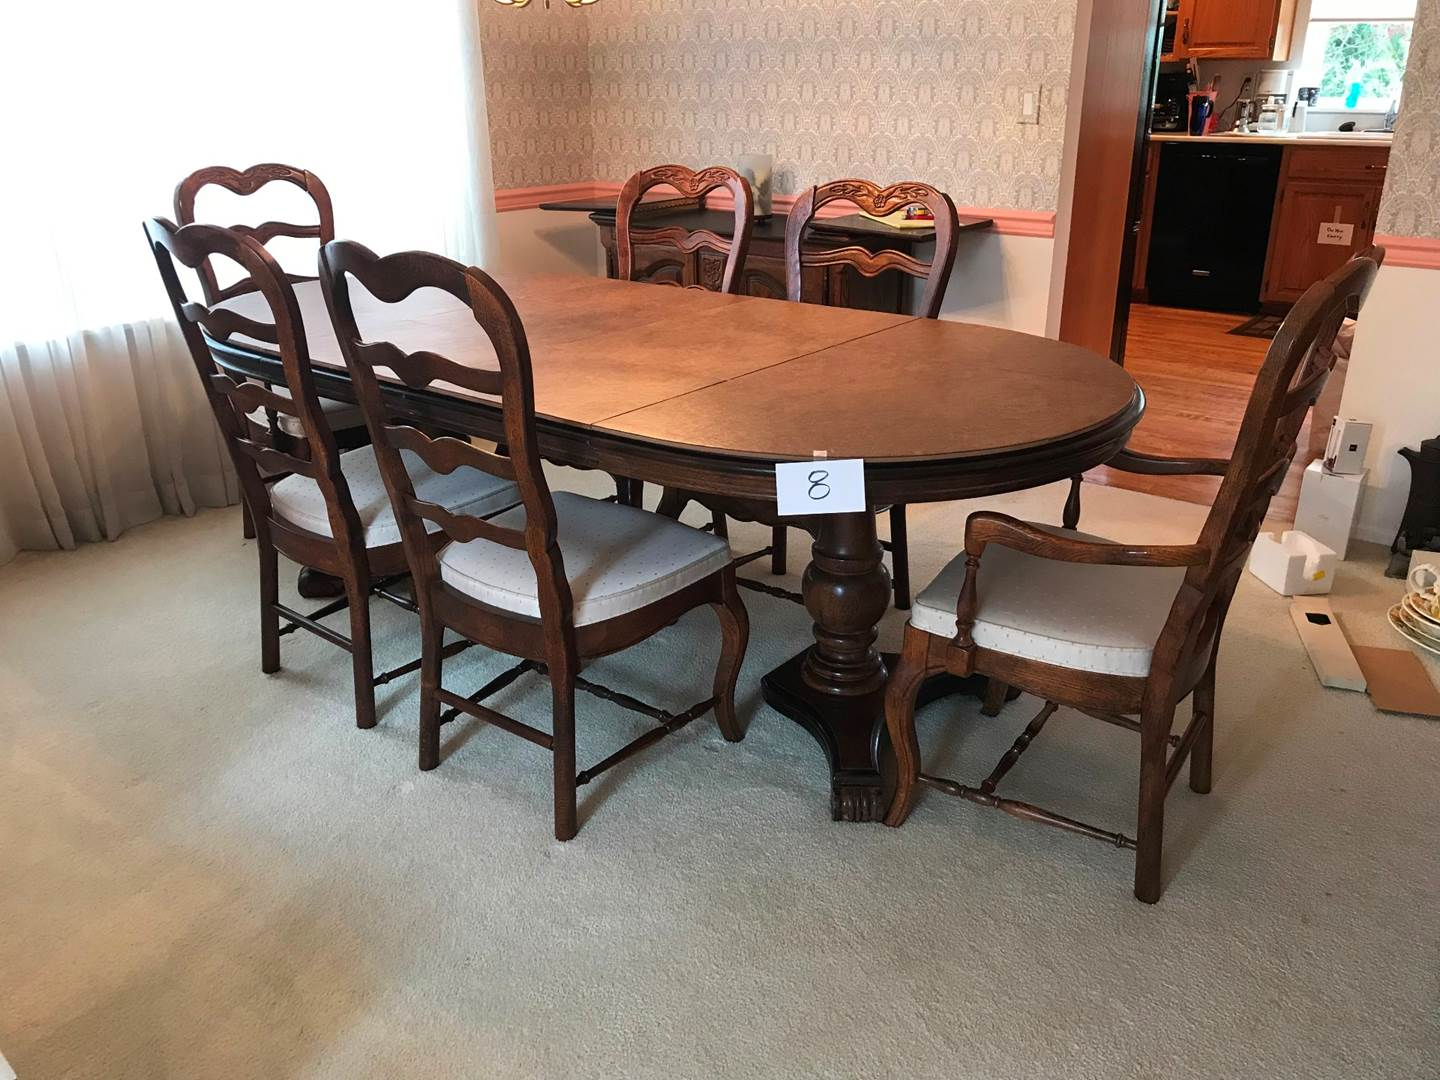 """Lot # 8 - Elegant vintage dining set/6 chairs including 2 armchairs, 2 18"""" leaves. 87.5x44x20.5hi (main image)"""